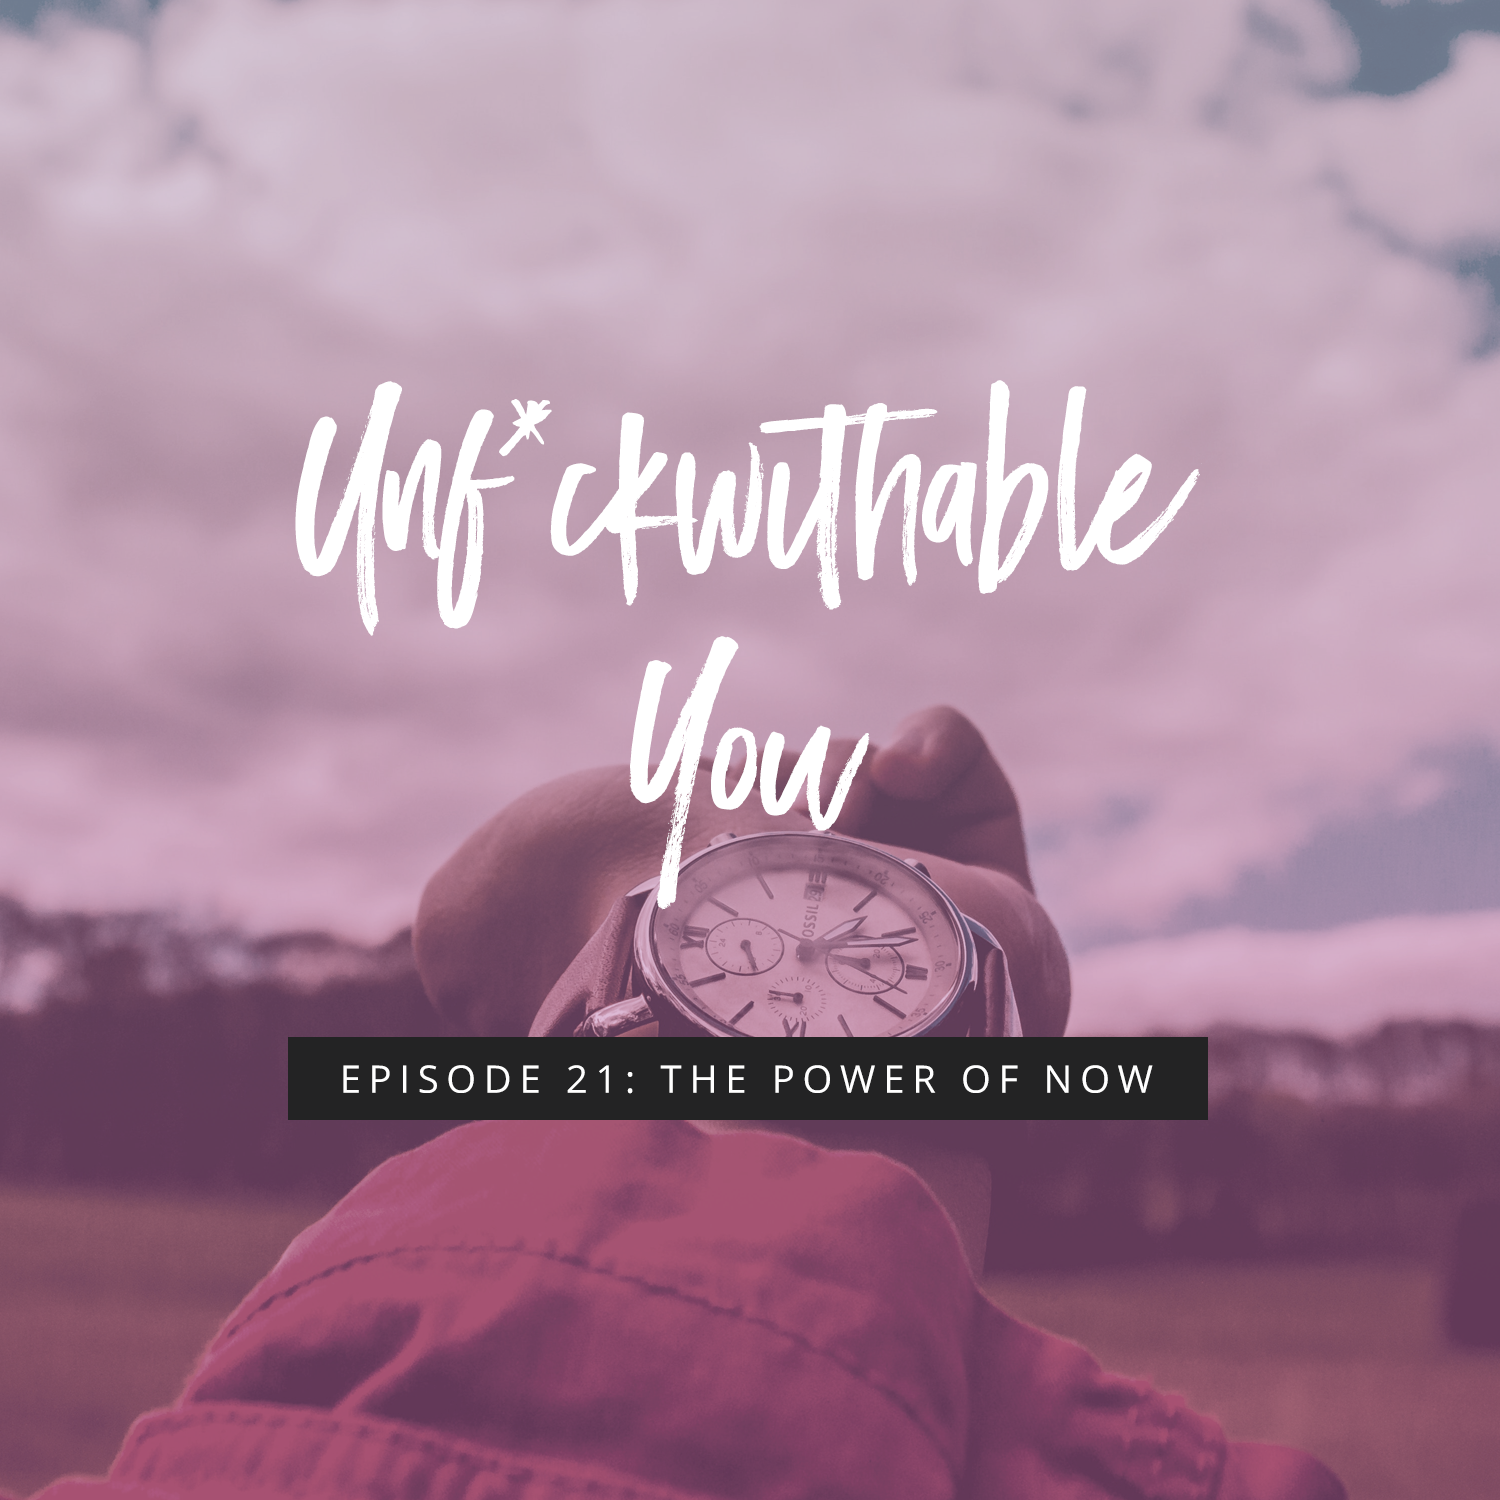 Unf*ckwithable You Episode 21: The Power Of Now